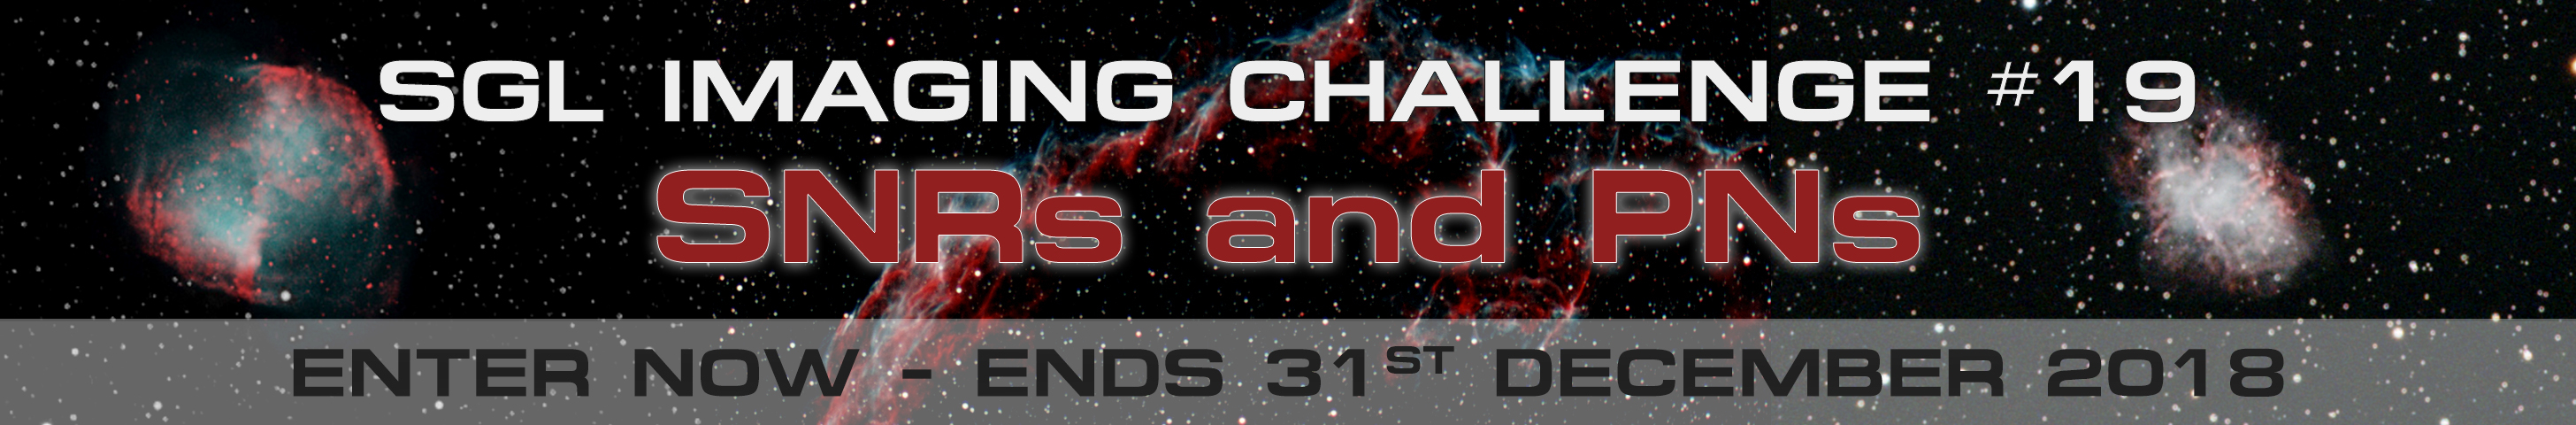 Imaging Challenge #19 - SNRs and PNs